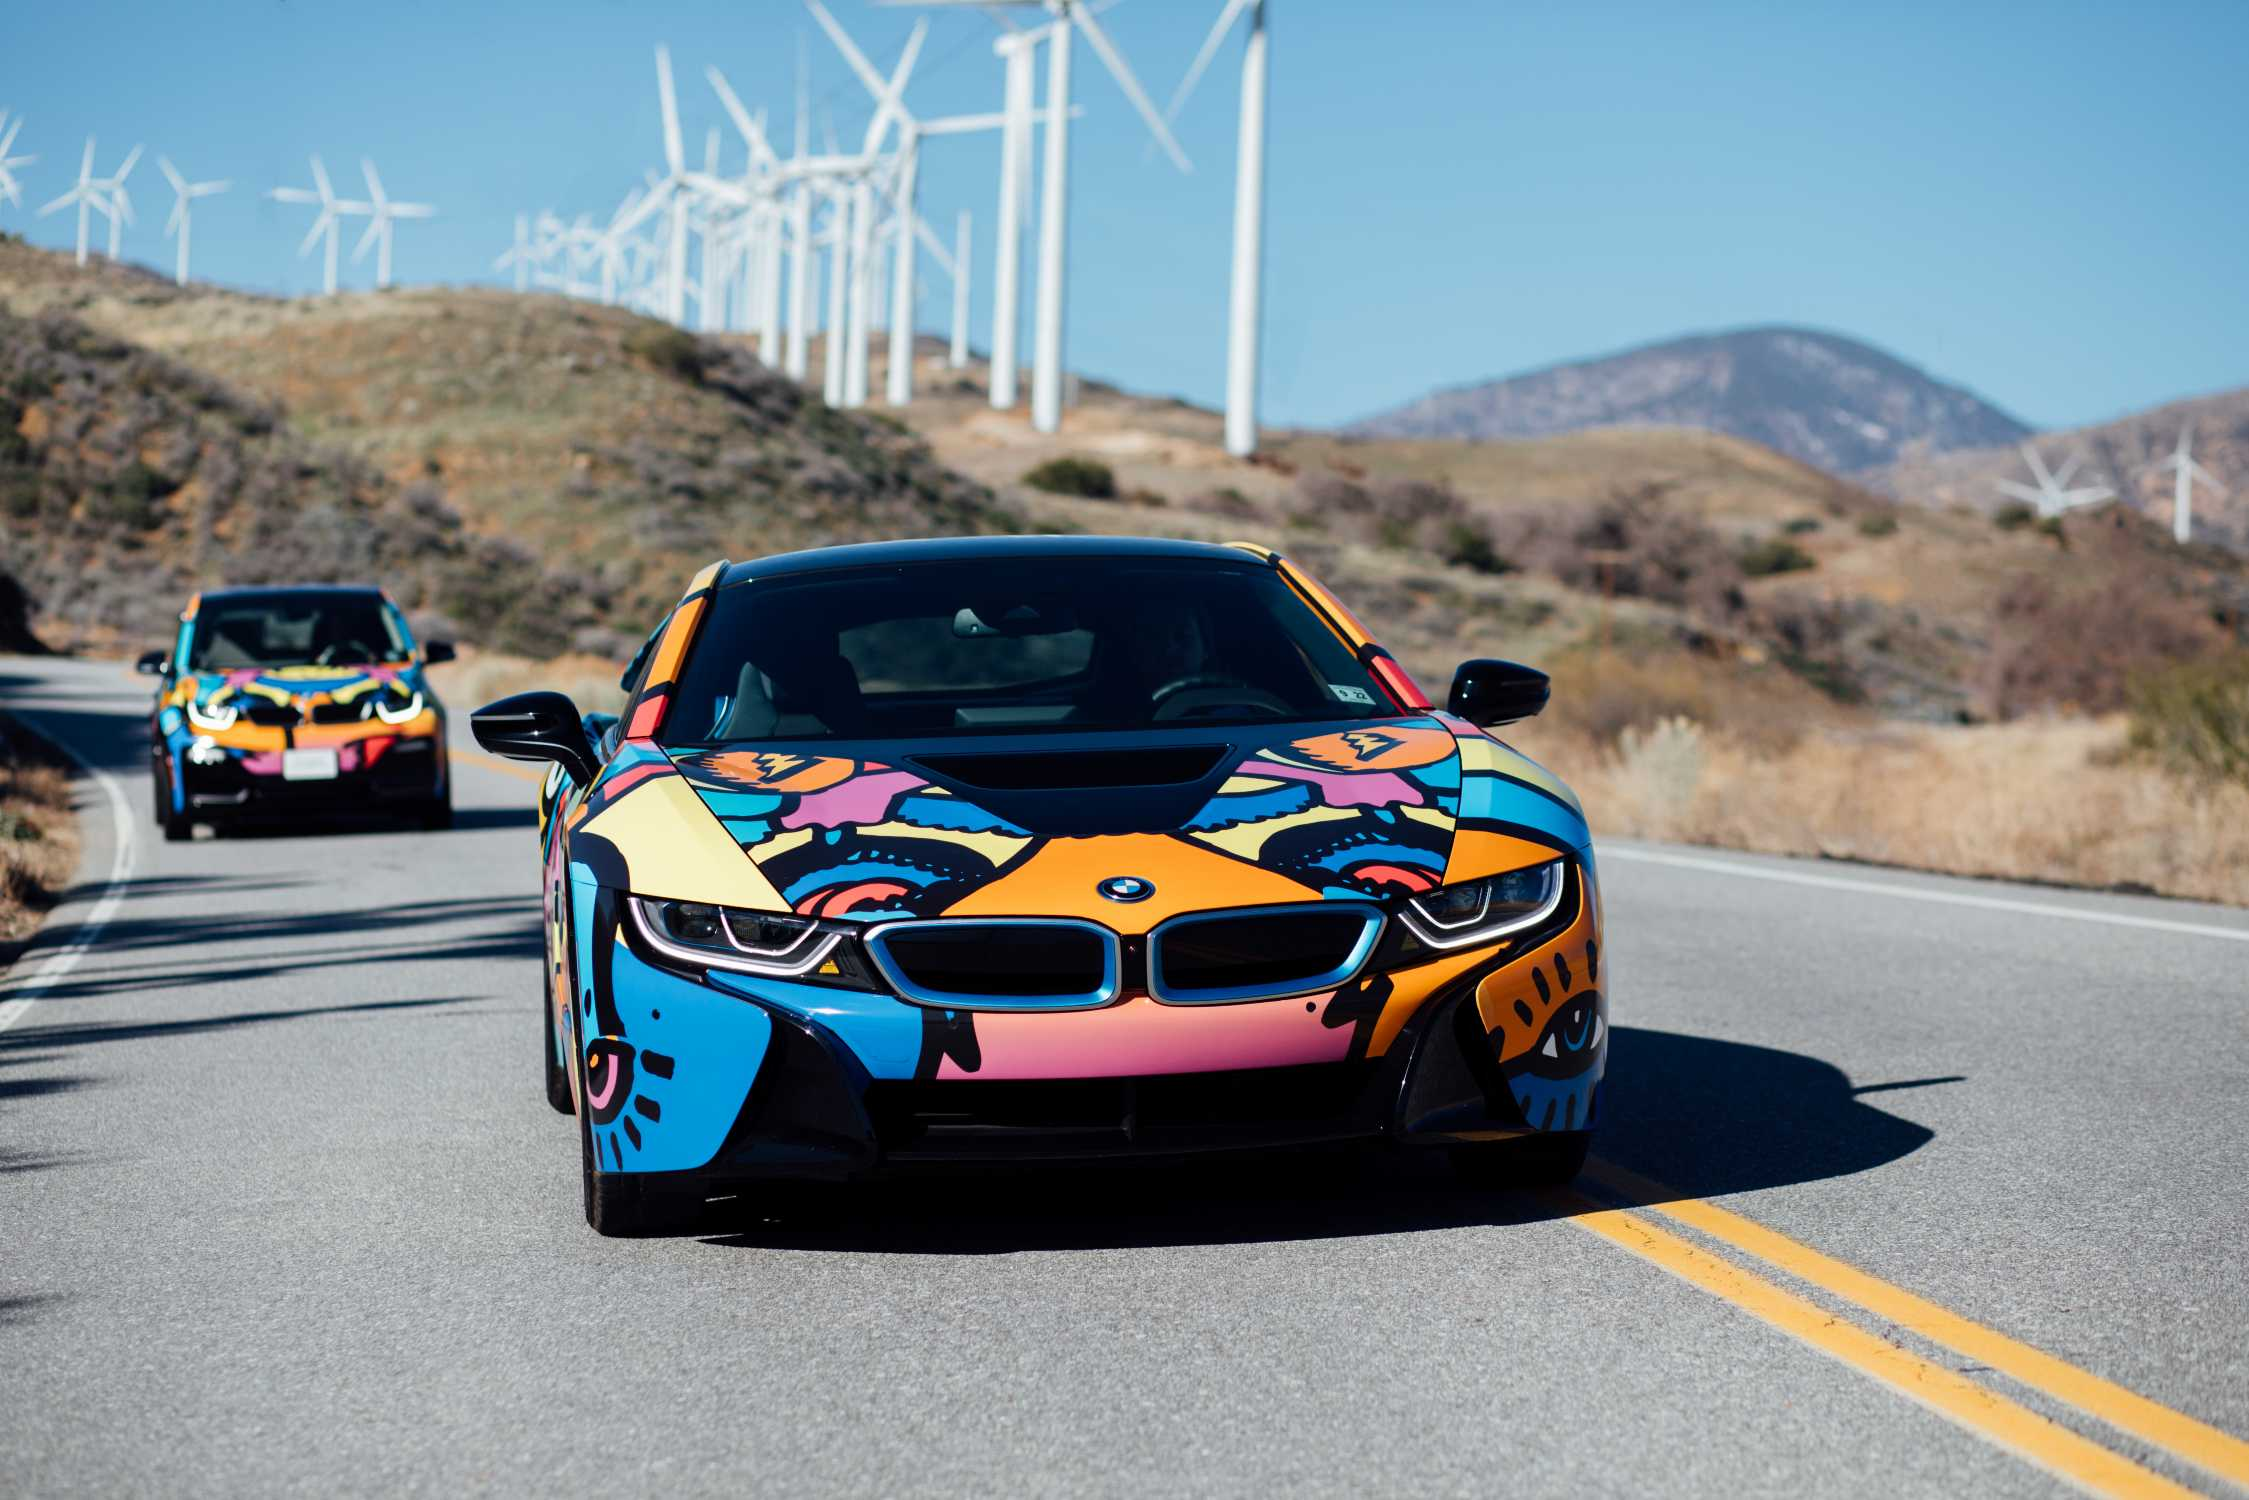 P90300144 bmw i is official partner of the coachella valley music and arts festival 2018 john gourley of portu 2249px